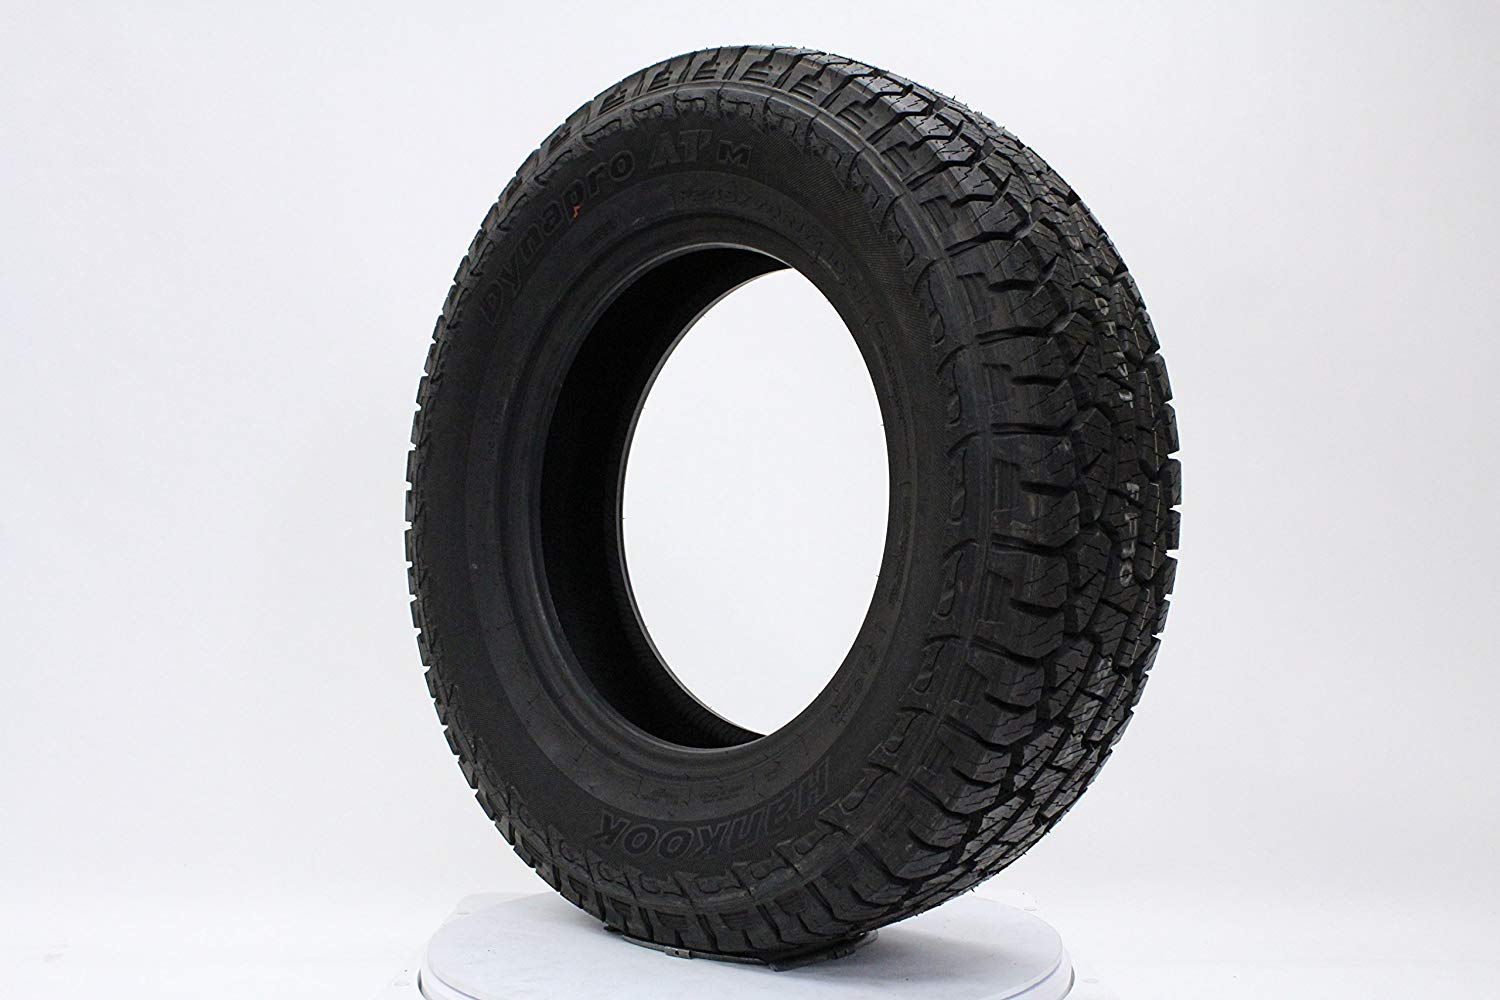 hankook dynapro atm rf10 review the best on off road tire for 4 4 vehicles. Black Bedroom Furniture Sets. Home Design Ideas